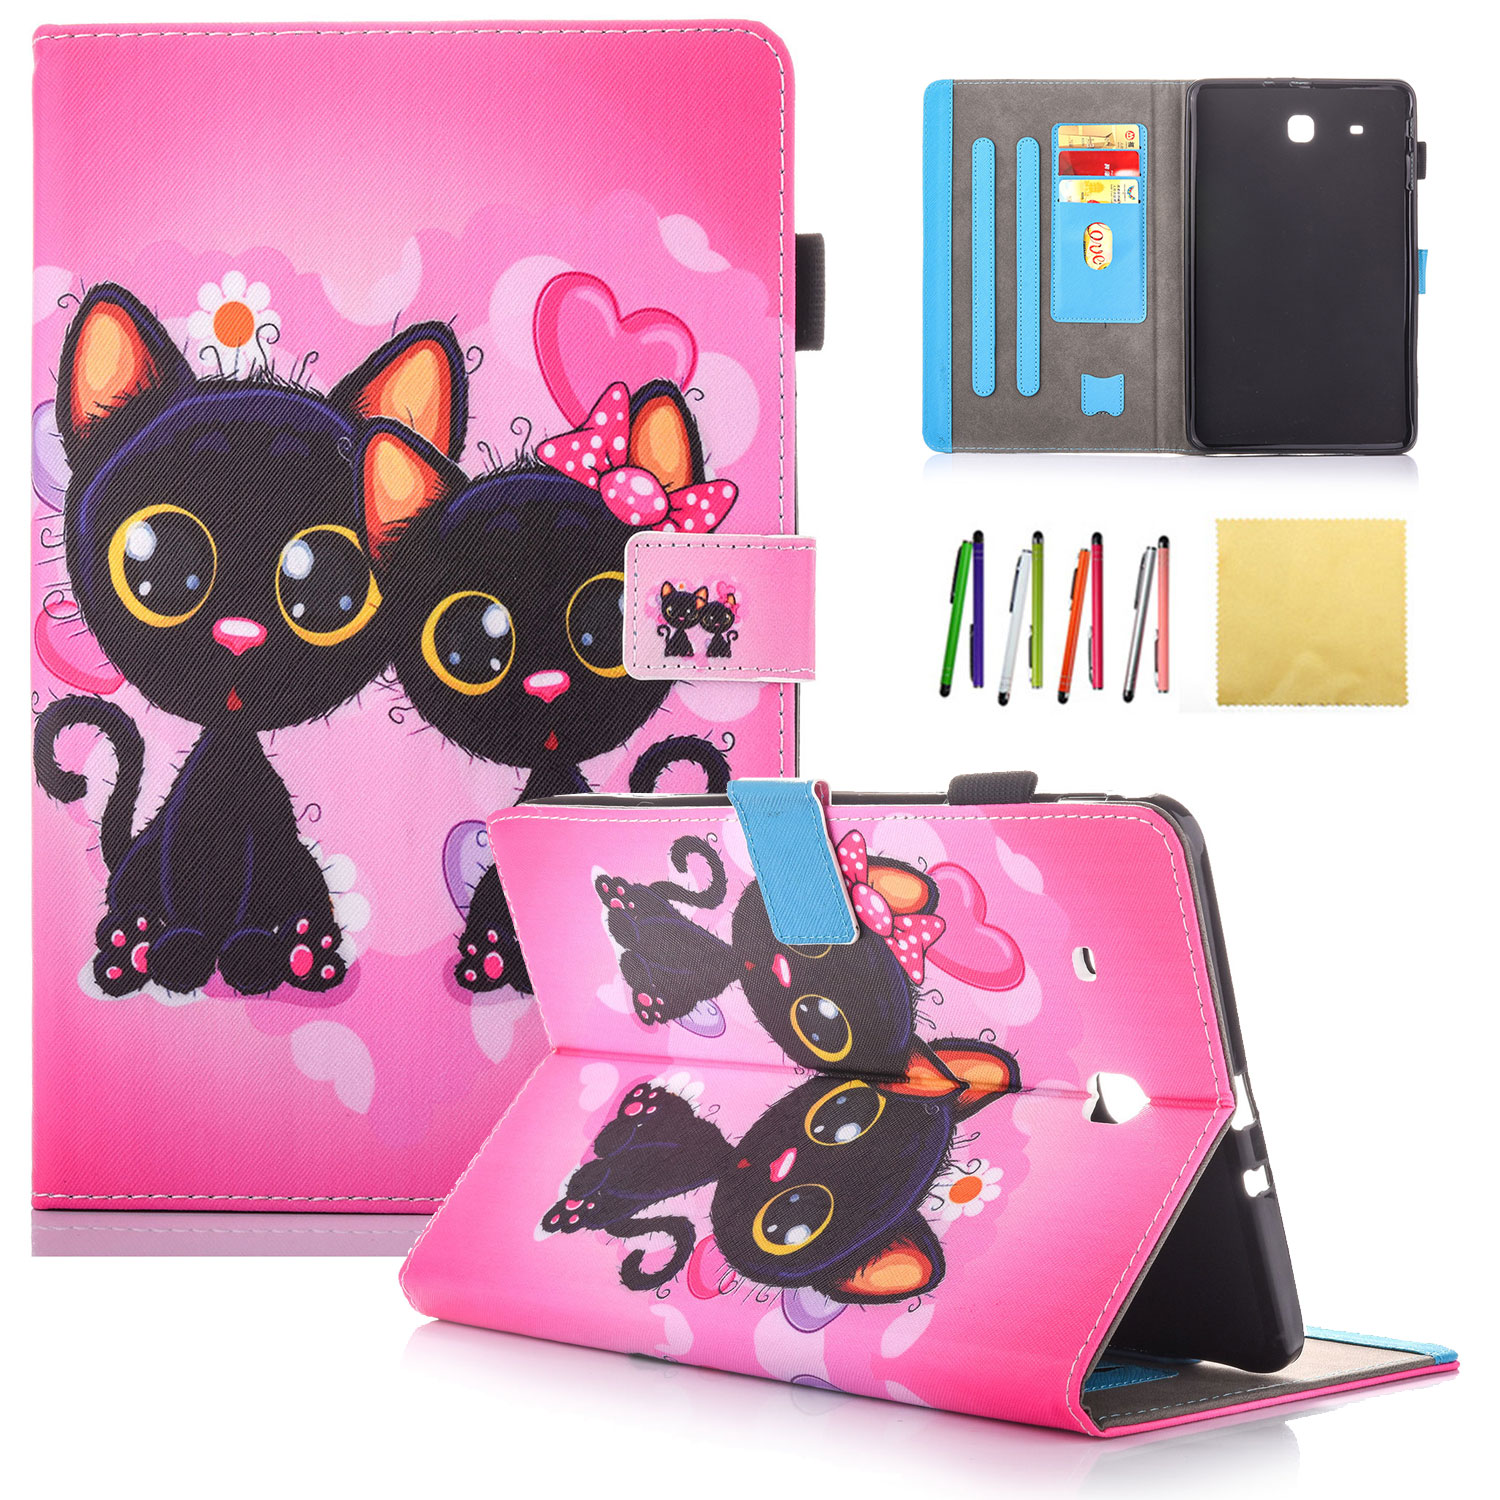 "Galaxy Tab E 9.6 Case, Allytech PU Leather Shell Stand Case for Galaxy Tab E 9.6""/ Tab E Nook 9.6-Inch Tablet (SM-T560/T561/T565 and SM-T567V Verizon 4G LTE Version)(Not Fit T560NU), Cute Cat"